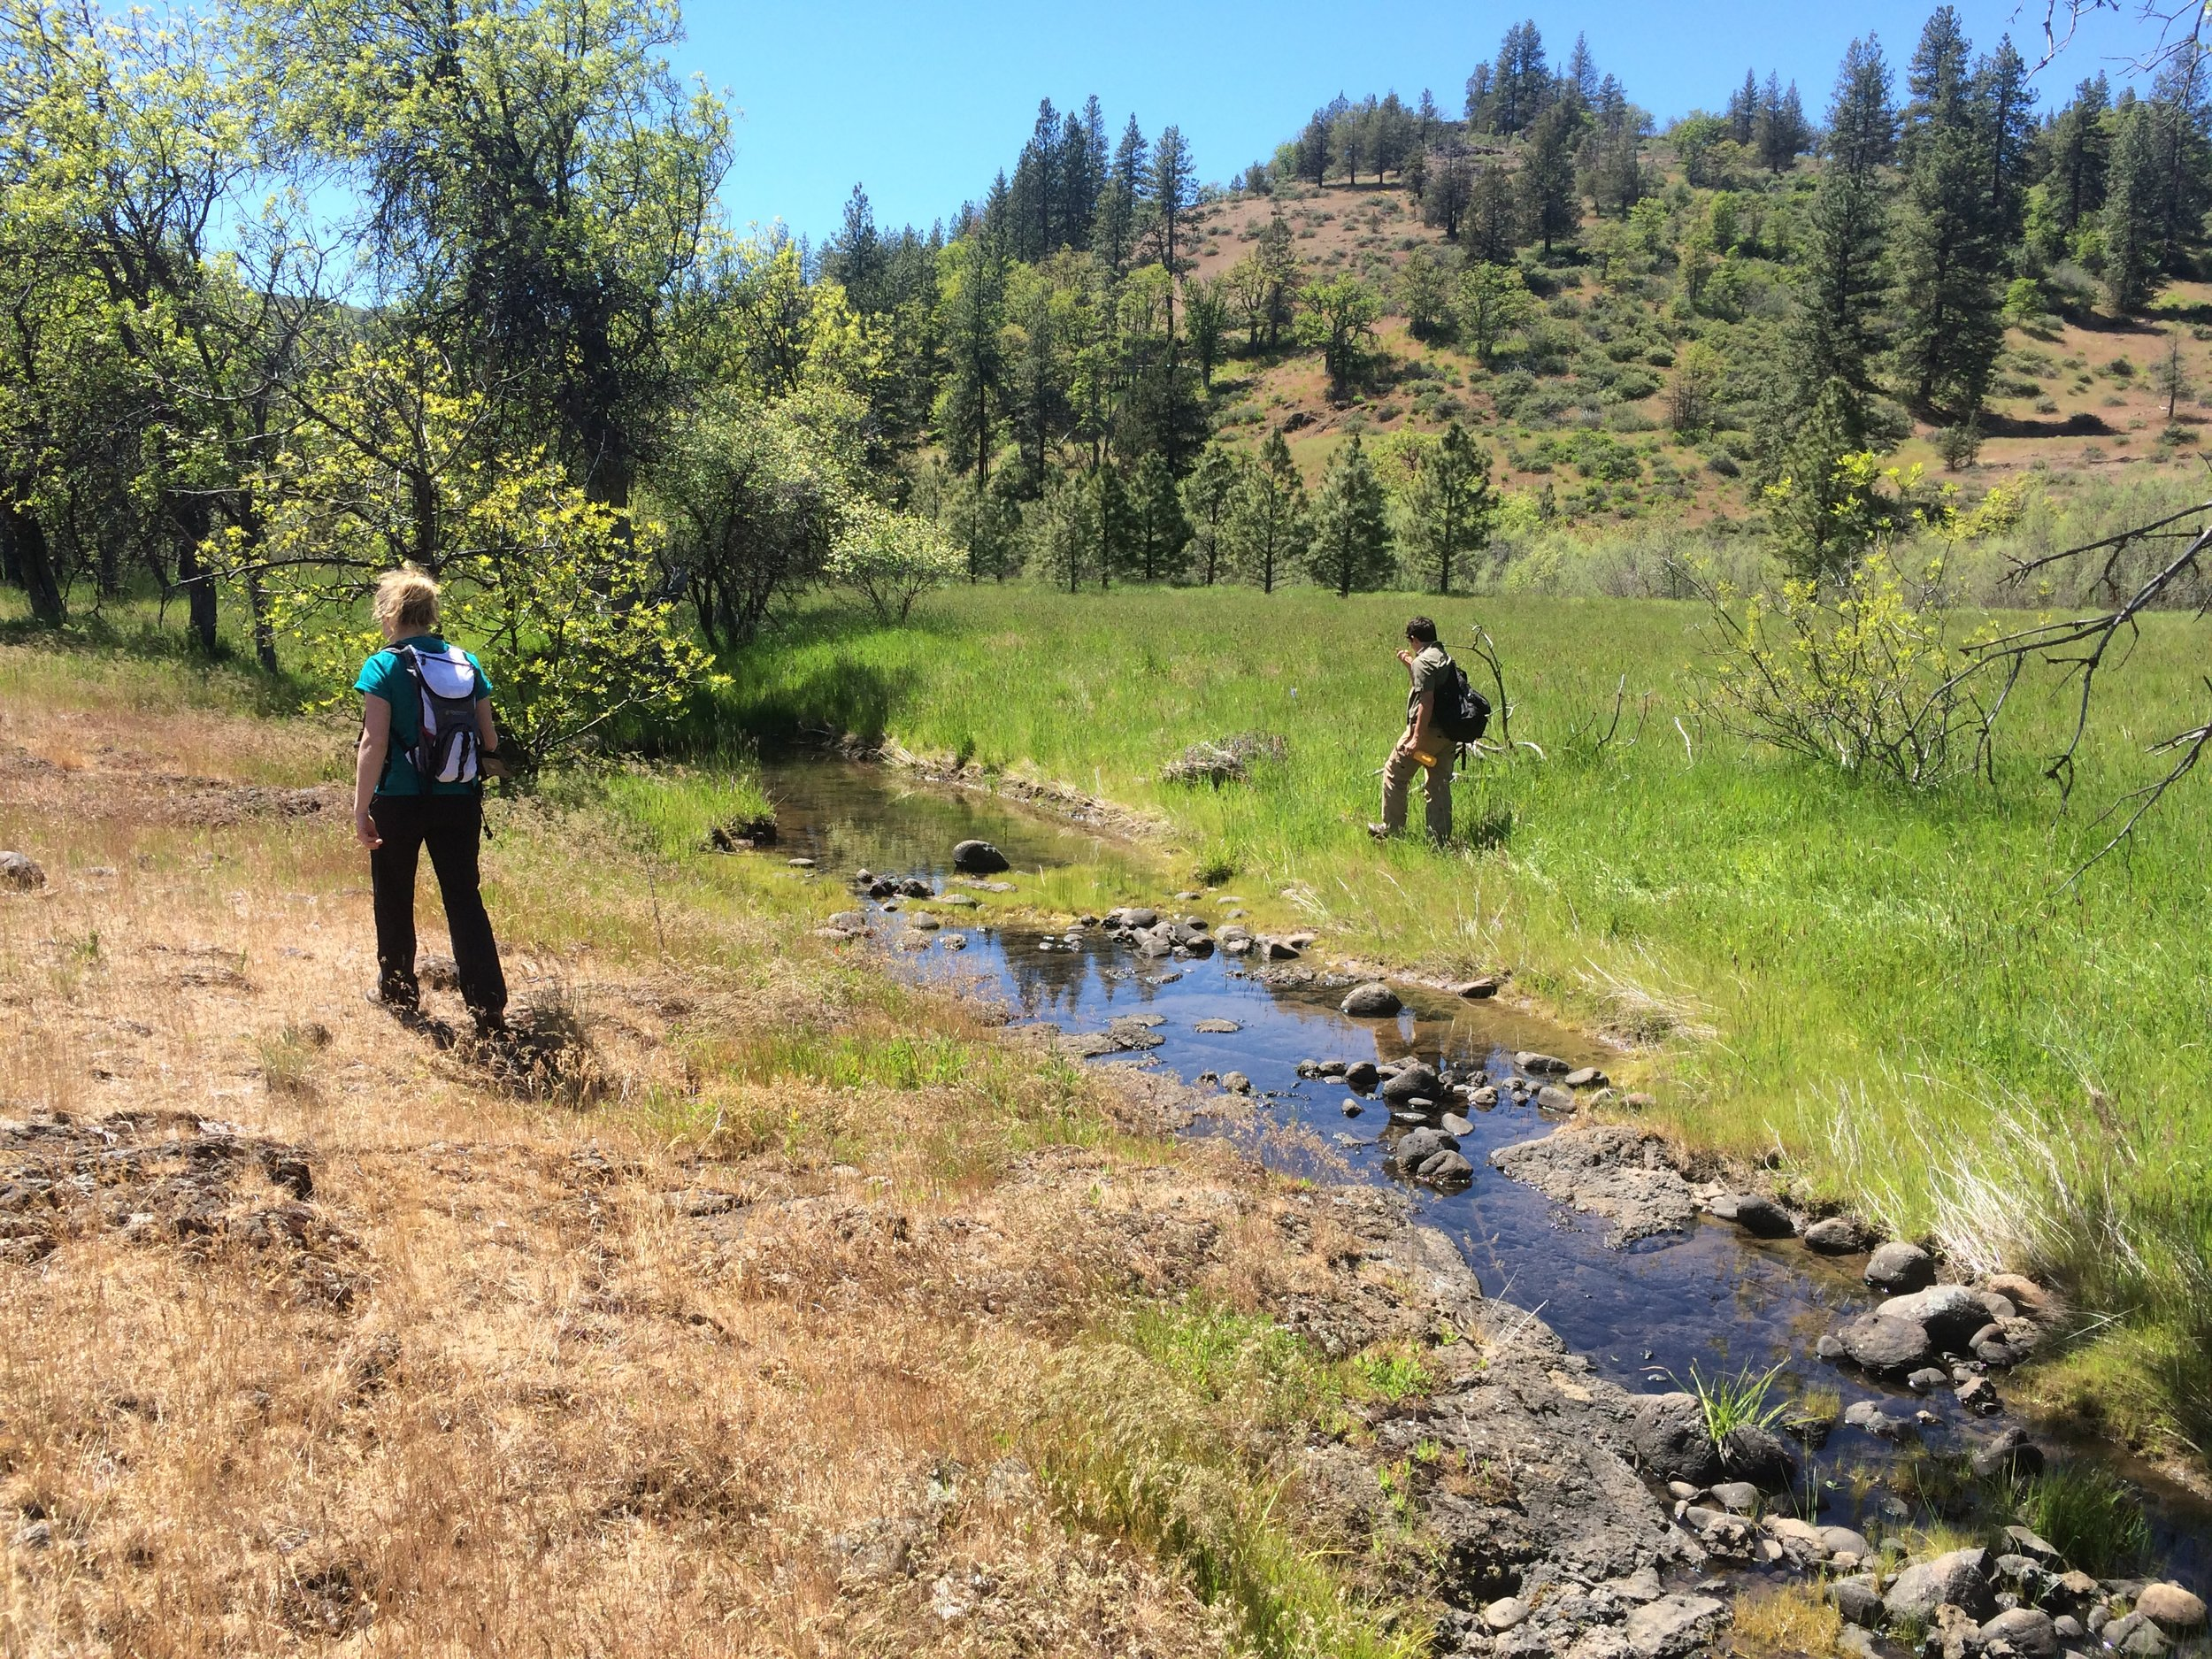 Surveying both sides of Lower Jenny Creek. Photo by Wanda Chin